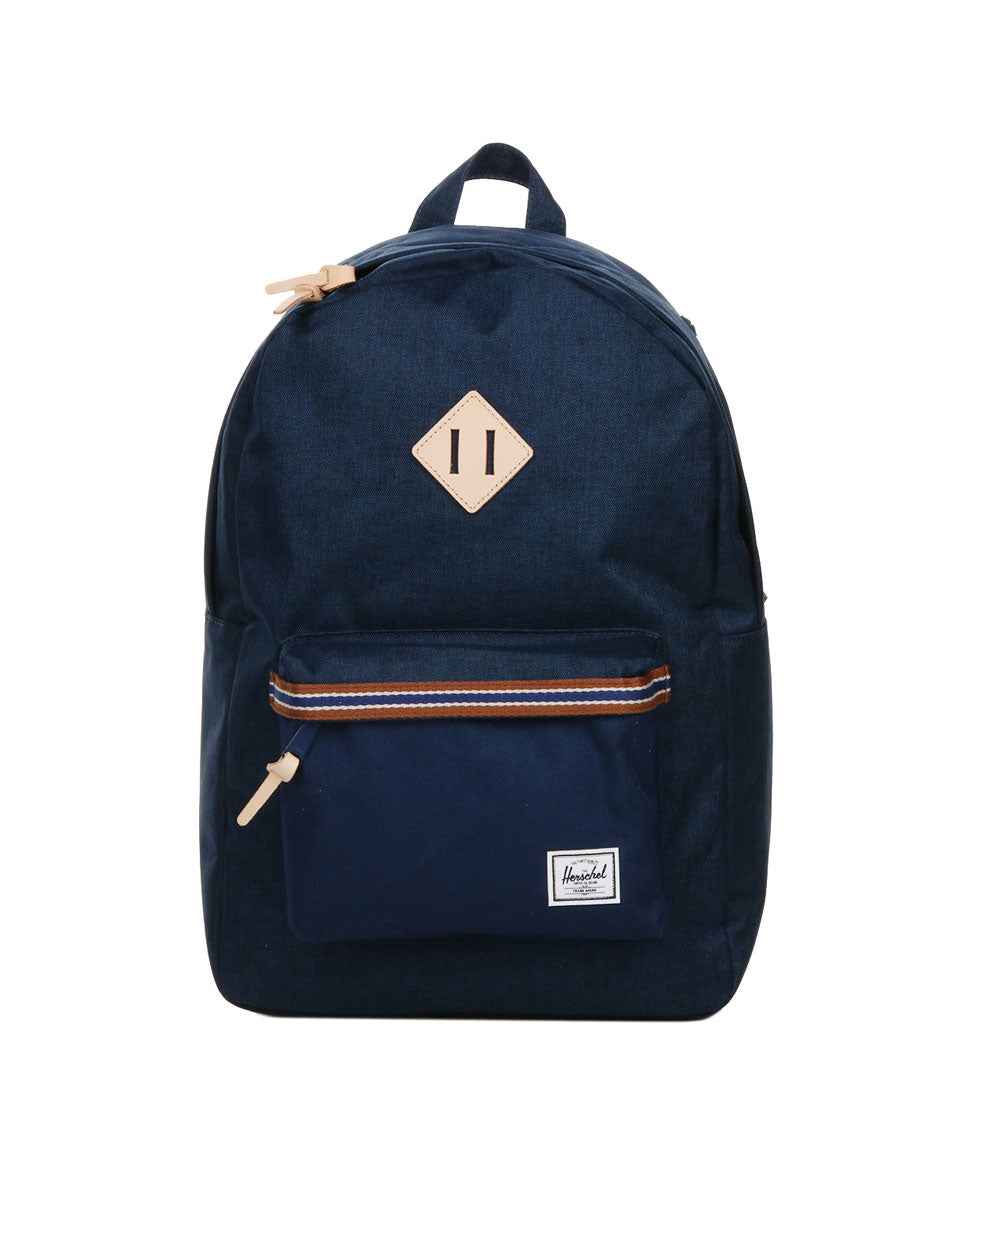 Herschel Supply Co. - Heritage Backpack, Medieval Blue Crosshatch/Medieval Blue